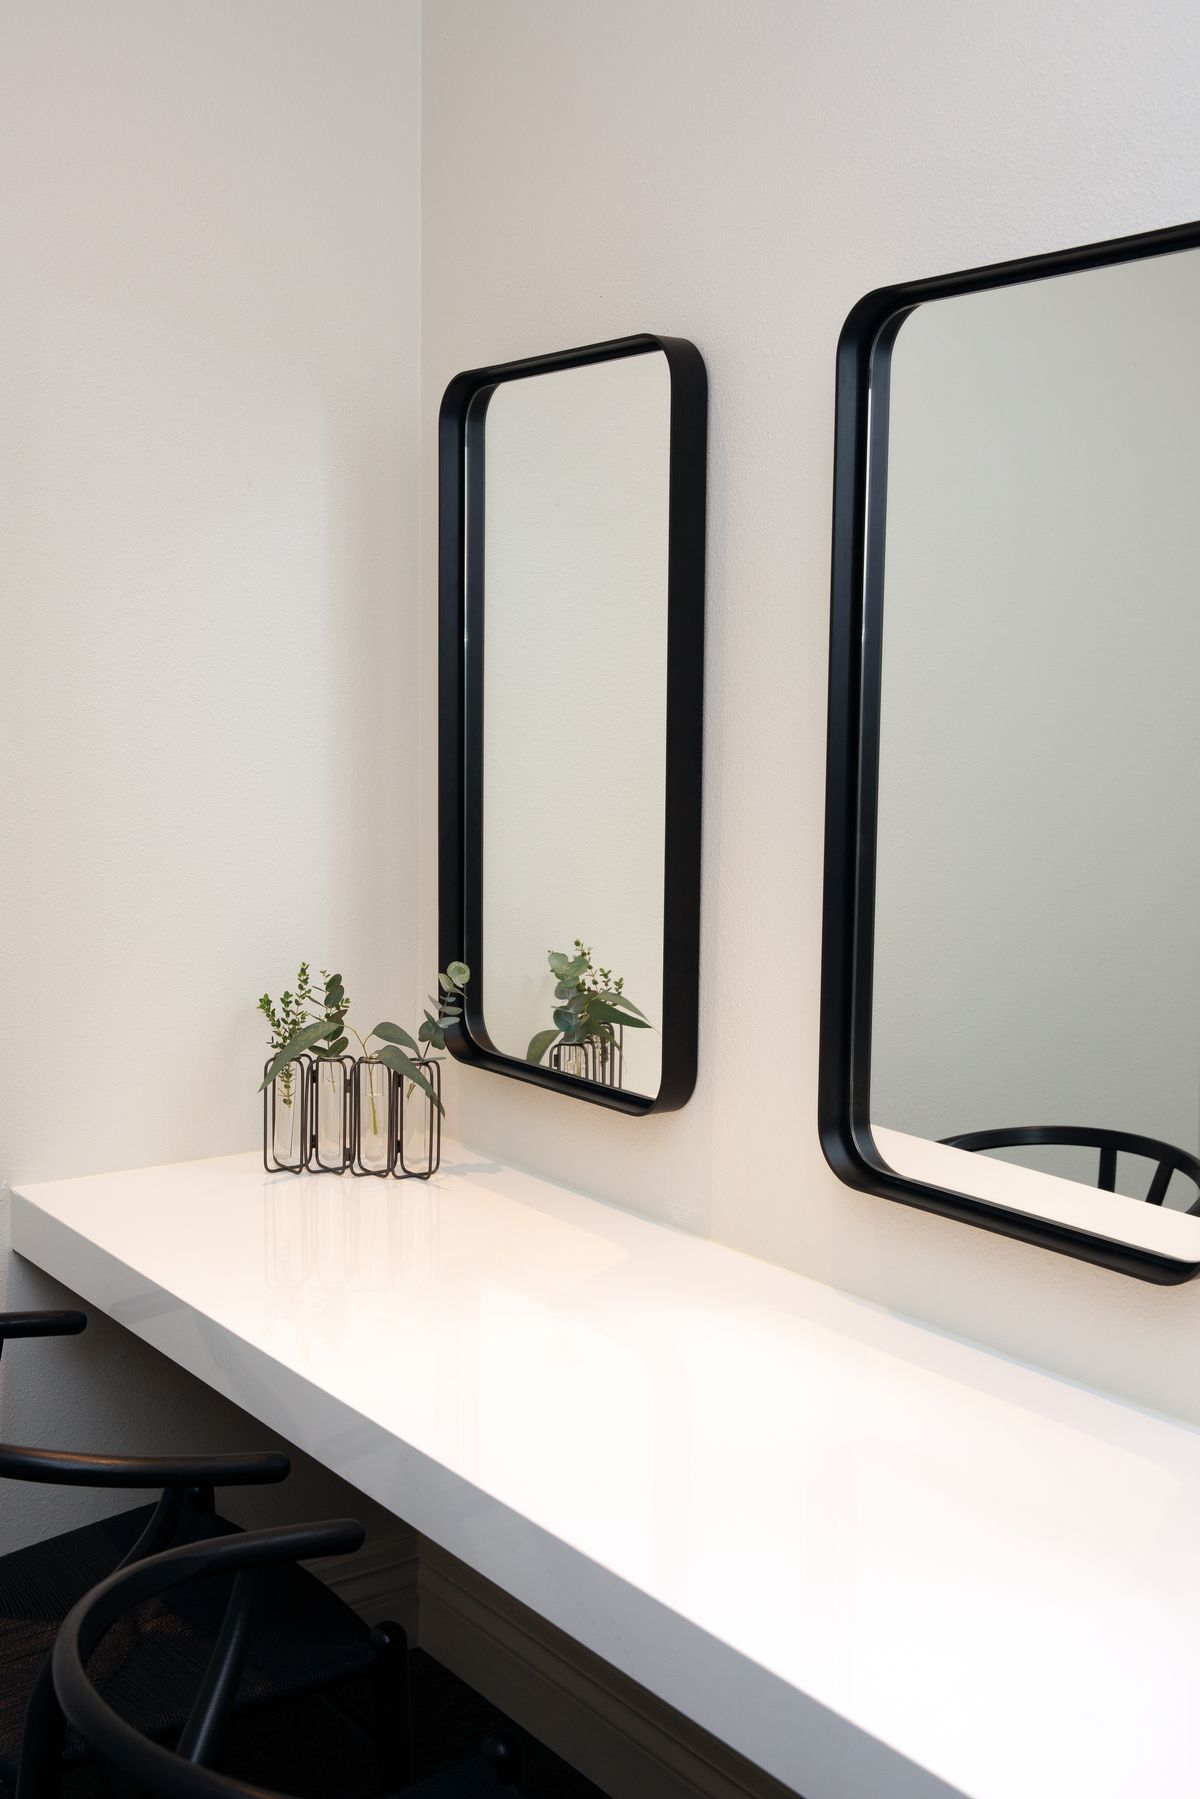 A counter with mirrors above.